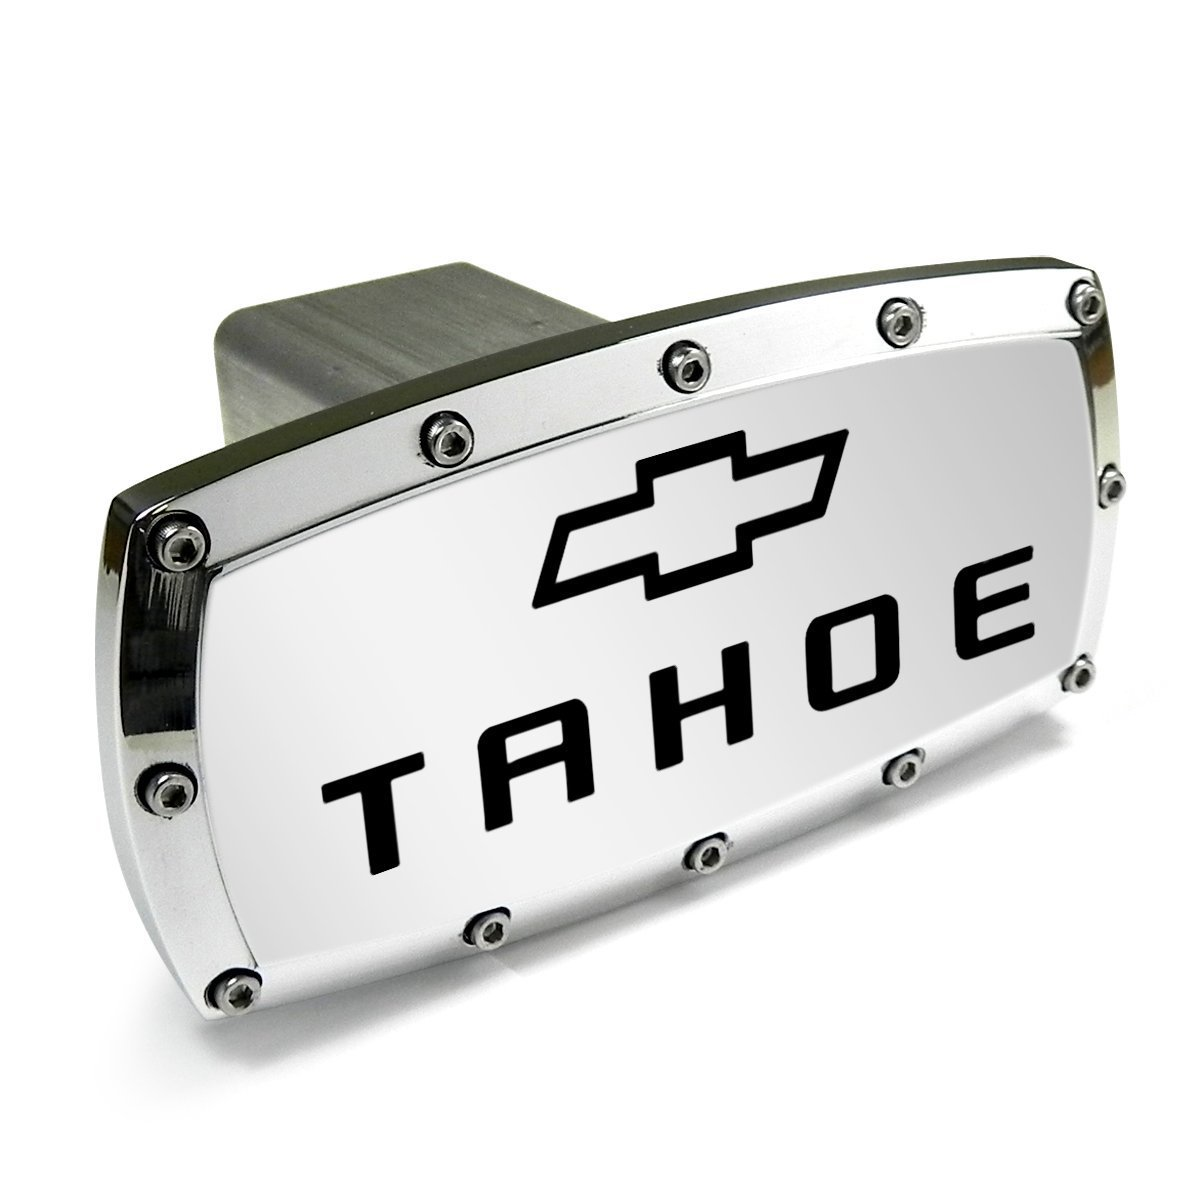 Chevrolet Tahoe Engraved Billet Aluminum Tow Hitch Cover